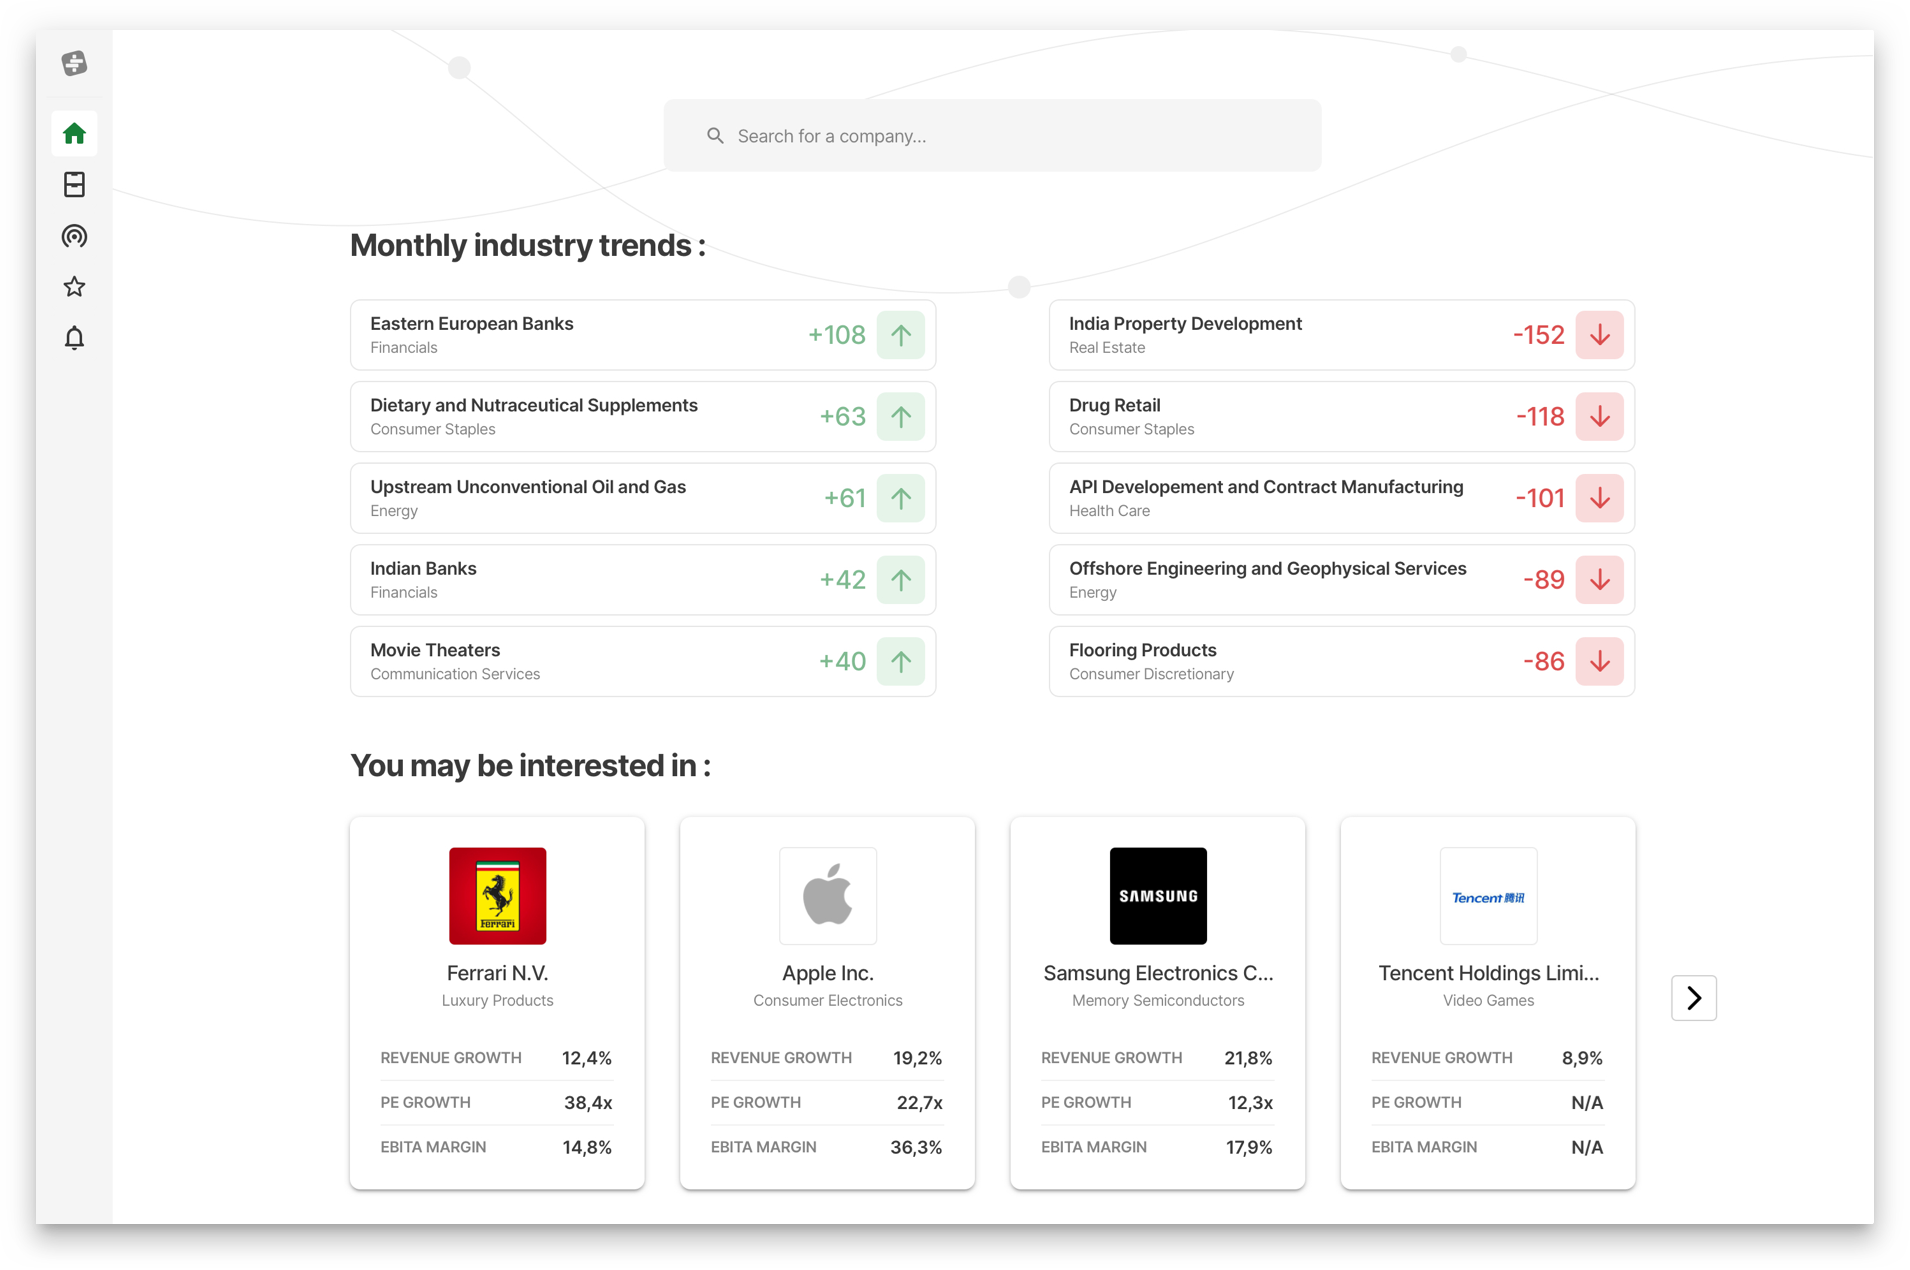 Snapshot of monthly industry and company trends